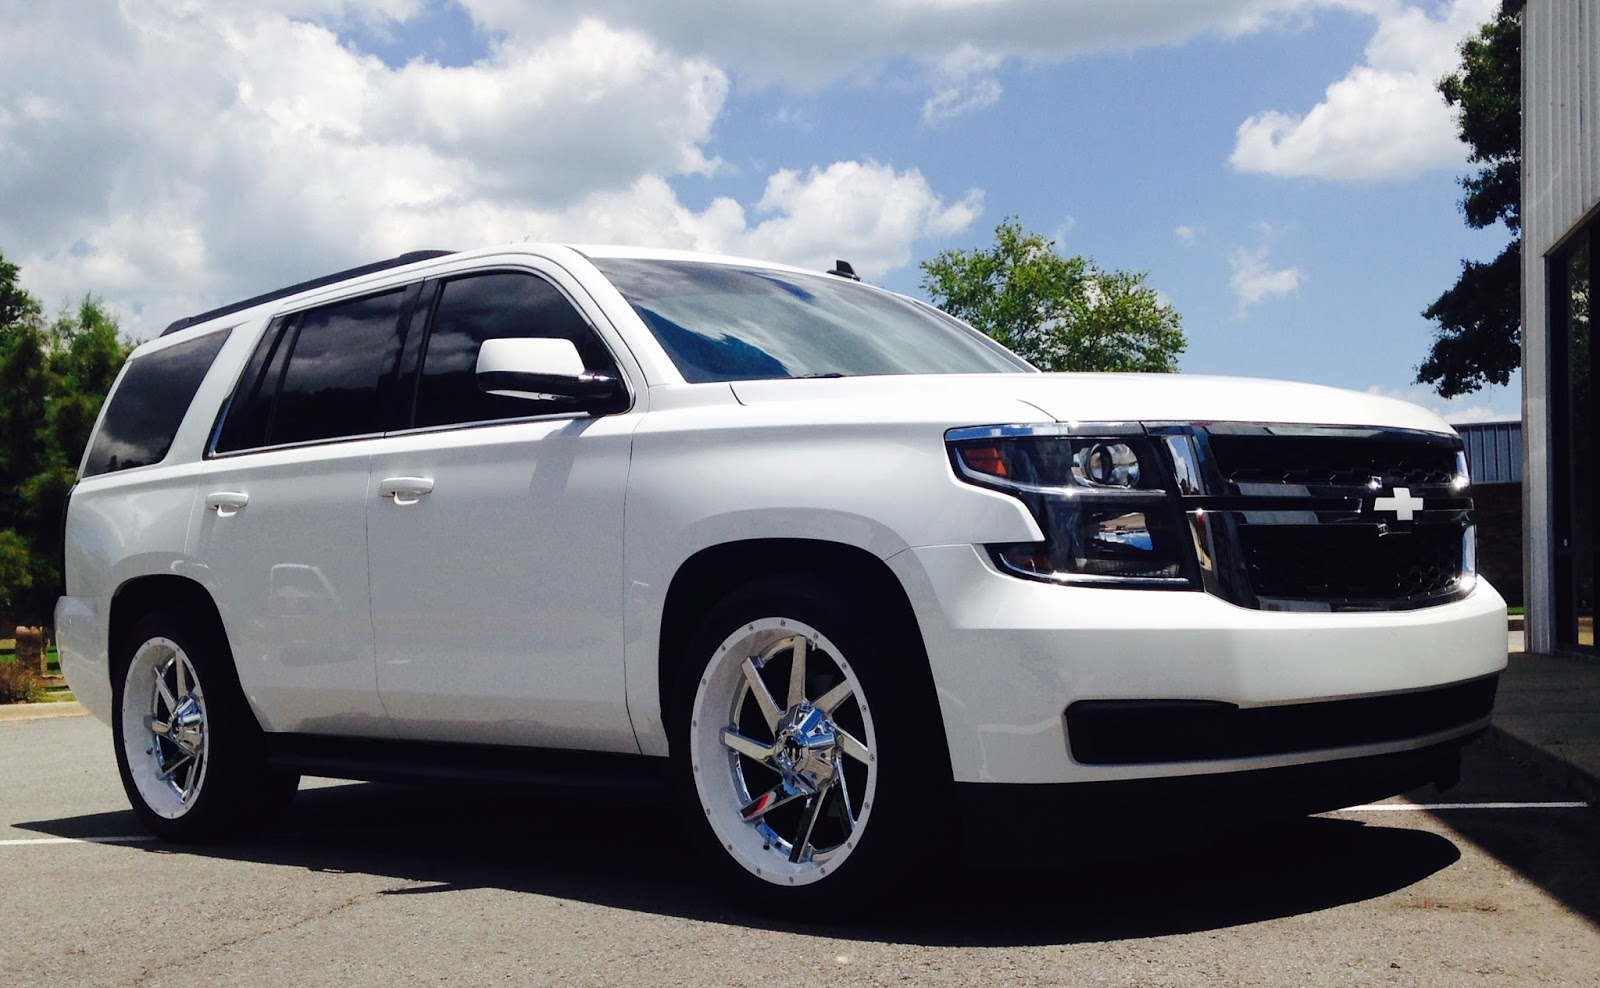 Used Chevy Tahoe New Car Specs And Price 2019 2020 2008 Colorado Fuse Box Diagram Motorsports Authority Msa 2015 Chevrolet Lowered On